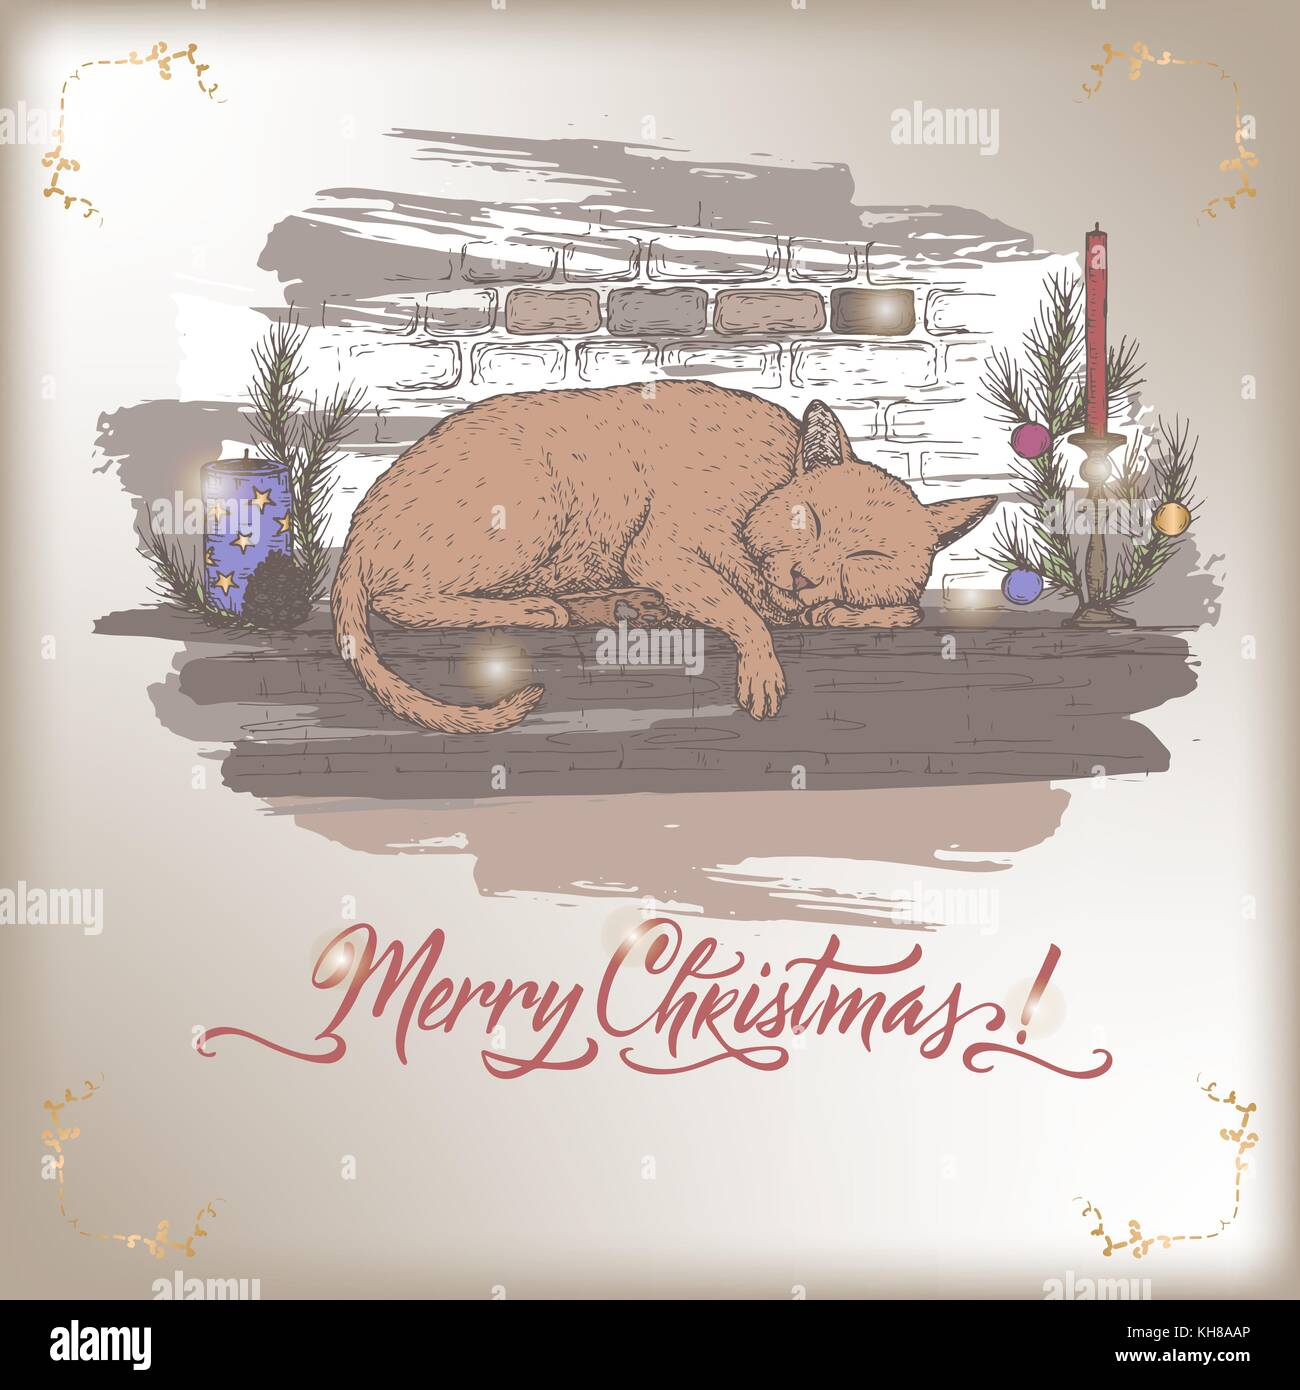 Dessin Cheminée Noel Couleur Cat By Fireplace Photos Cat By Fireplace Images Alamy